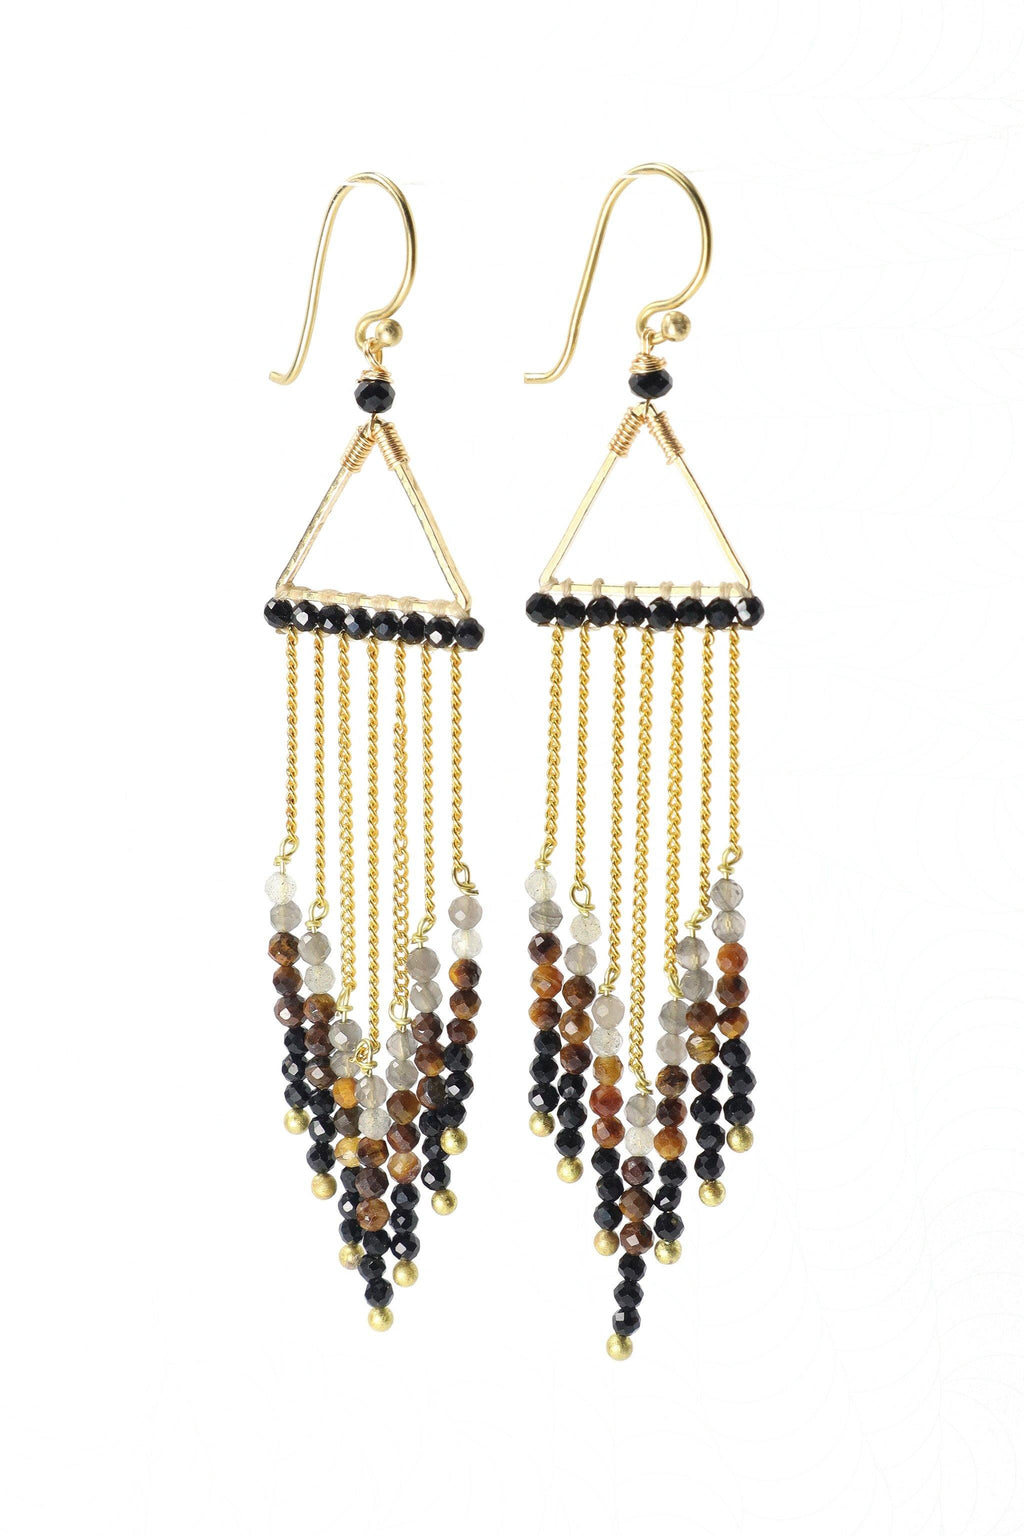 These waterfall statement earrings are a show stopper. They feature beautiful faceted smokey quartz, tiger eye, and onyx gemstones hanging from a golden triangle in graduated tones from light to dark. They are handmade with love in Thailand. This is a Fairtrade Product.